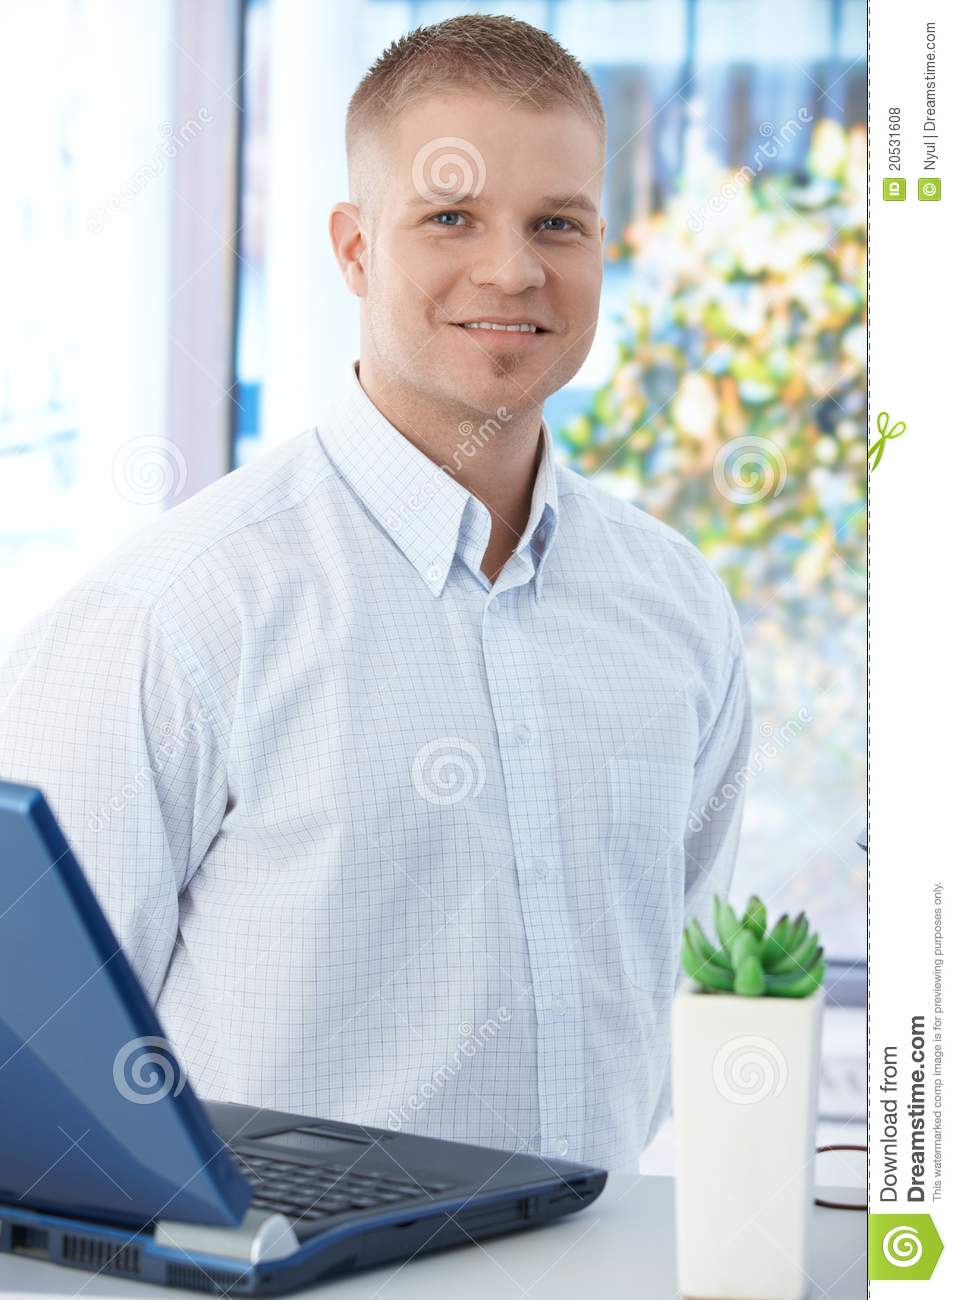 Office worker guy with laptop